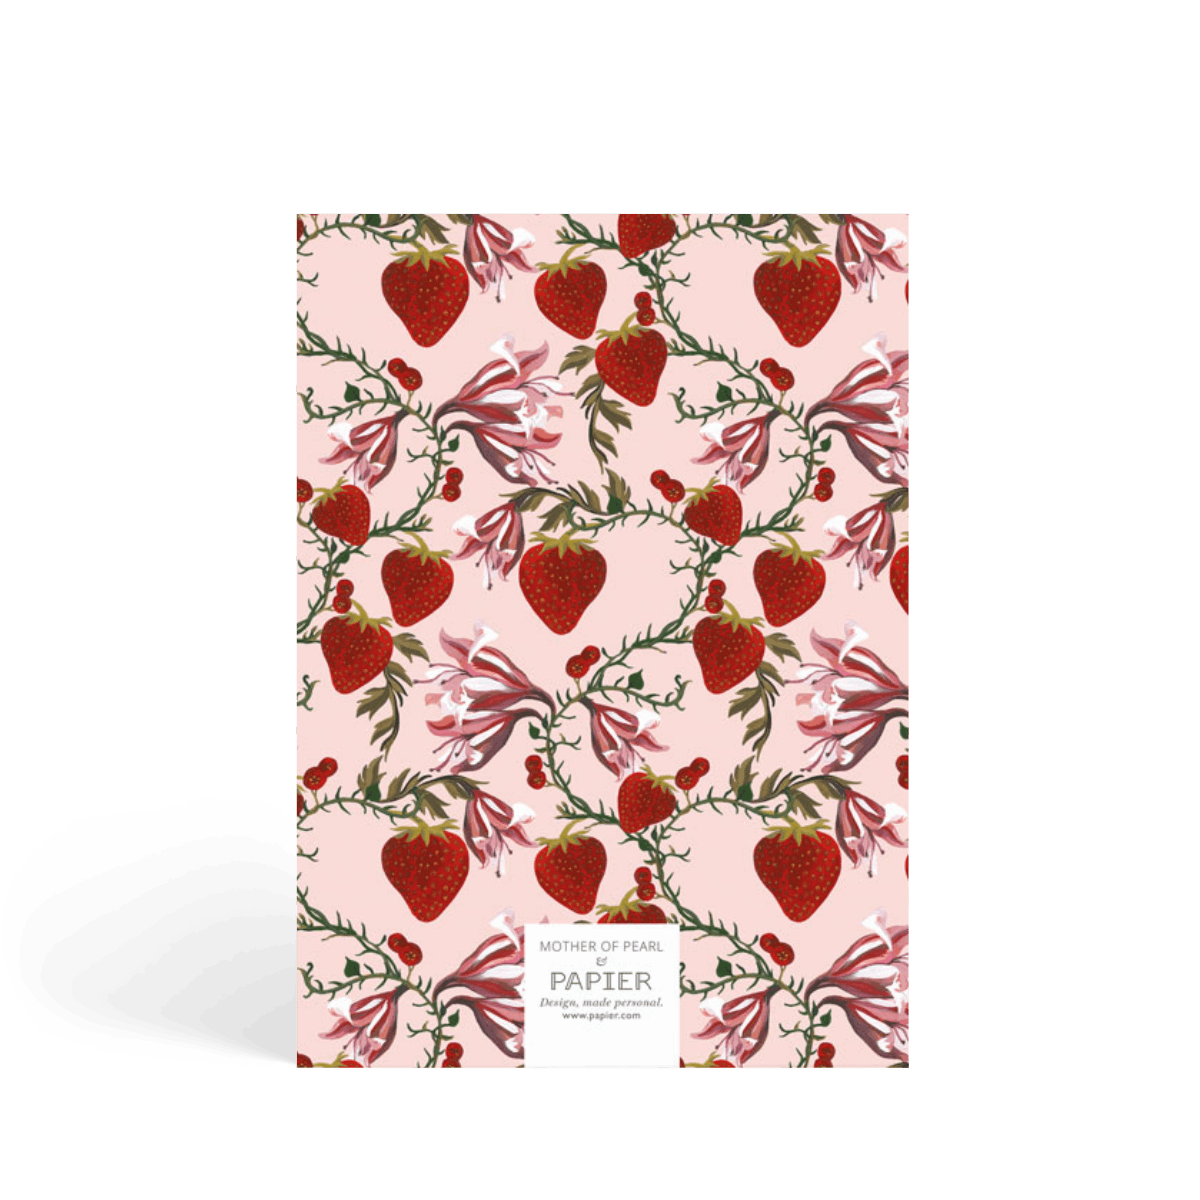 Https%3a%2f%2fwww.papier.com%2fproduct image%2f47157%2f5%2fstrawberry floral 11562 back 1537372613.png?ixlib=rb 1.1